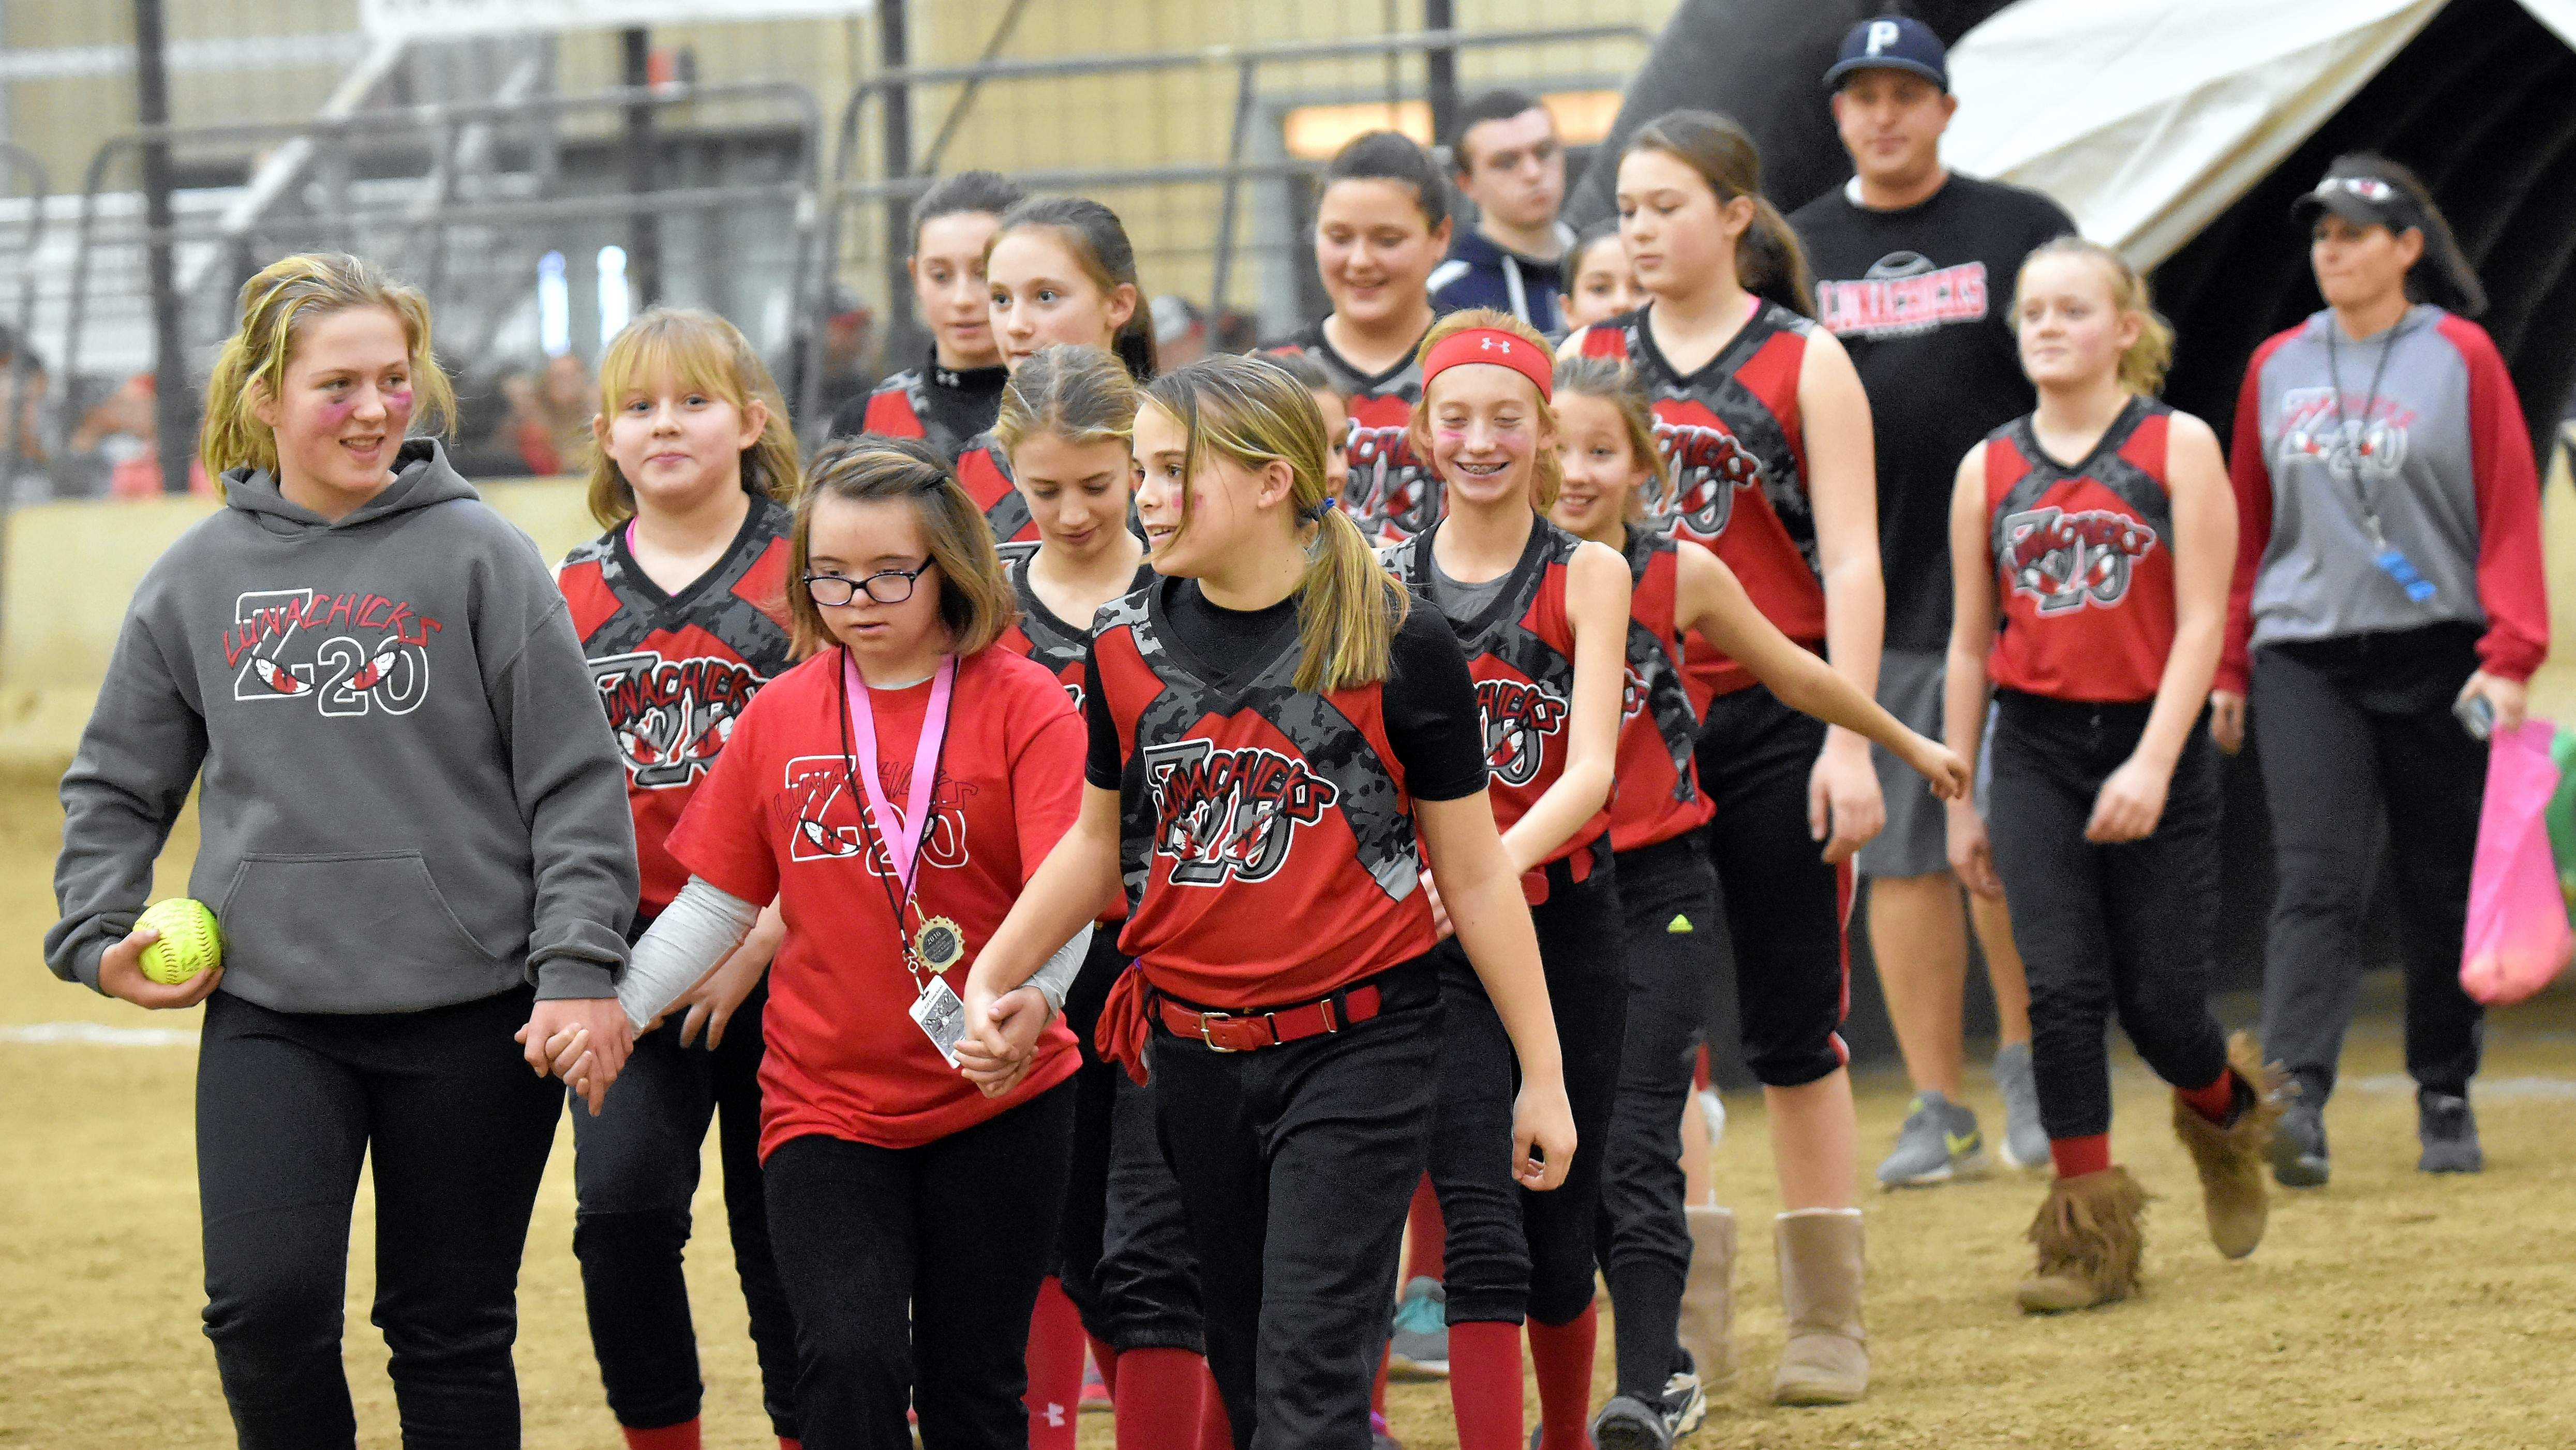 The 12-and-under Z20 Lunachicks, based out of Pinckneyville, enter the field during Saturday's opening ceremonies of the Indoor Softball Girls Fastpitch Tournament with their Special Olympics athlete Addi Williams, of Du Quoin.